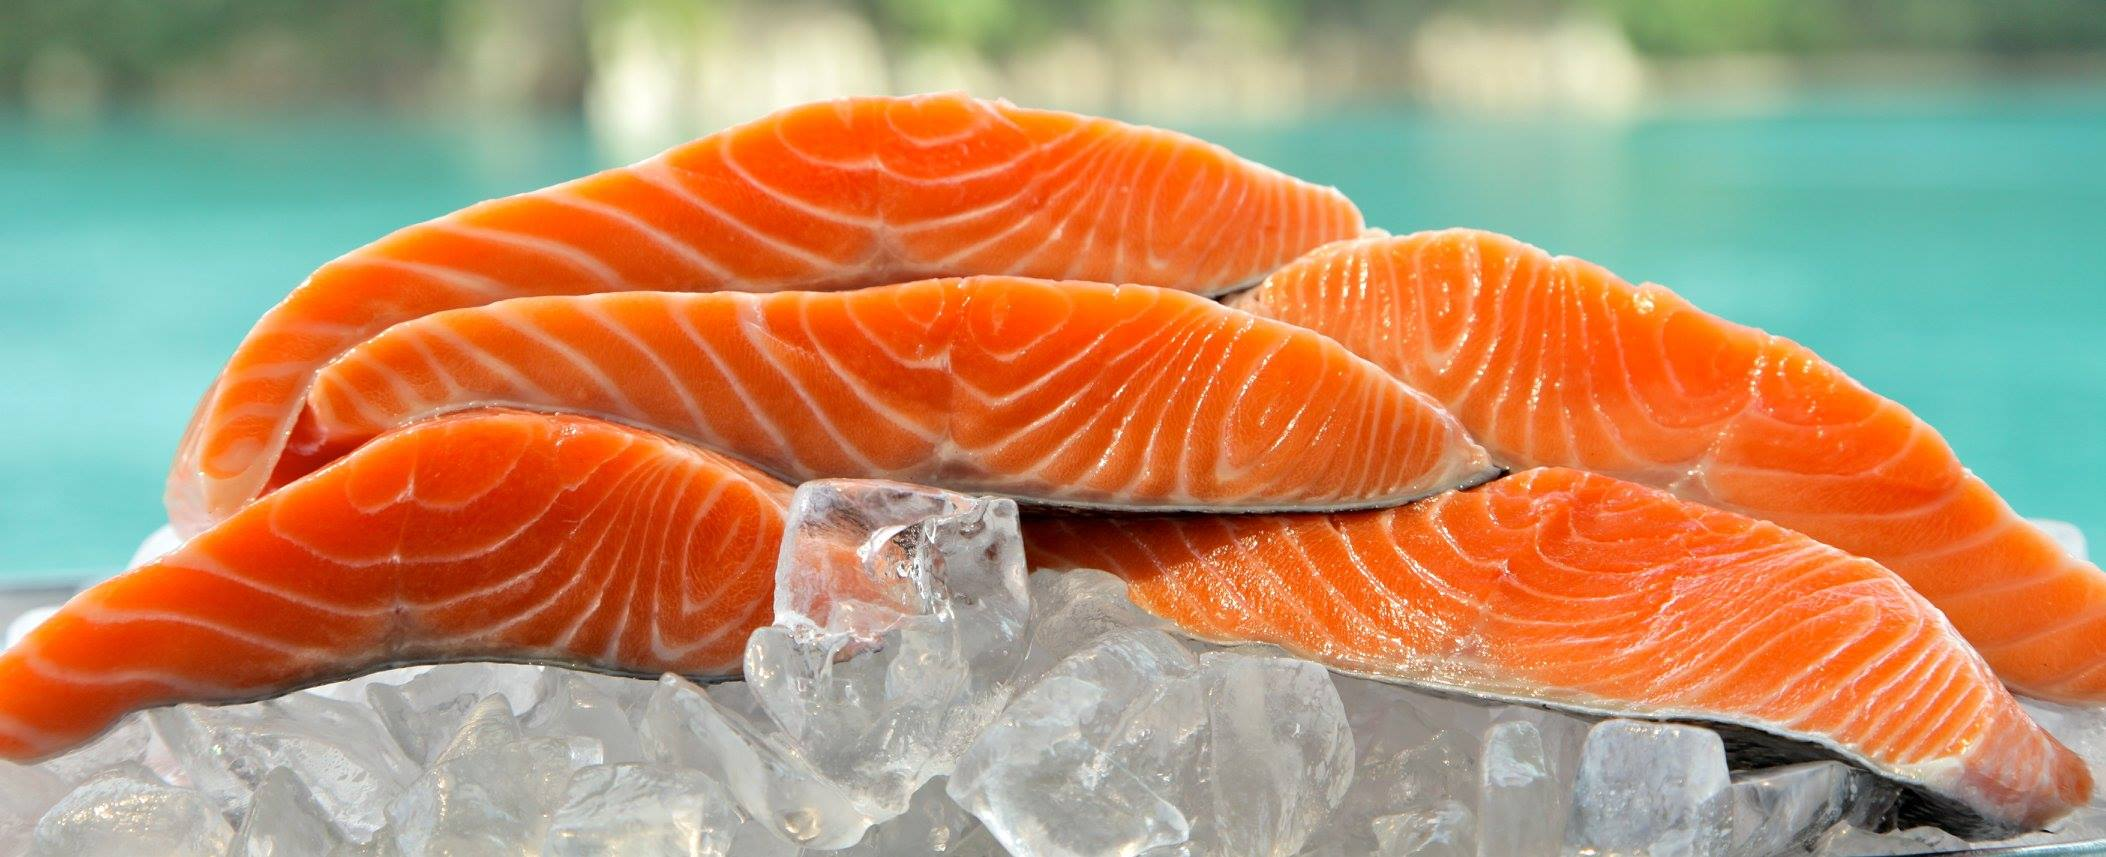 nz king salmon hires new coo from huon